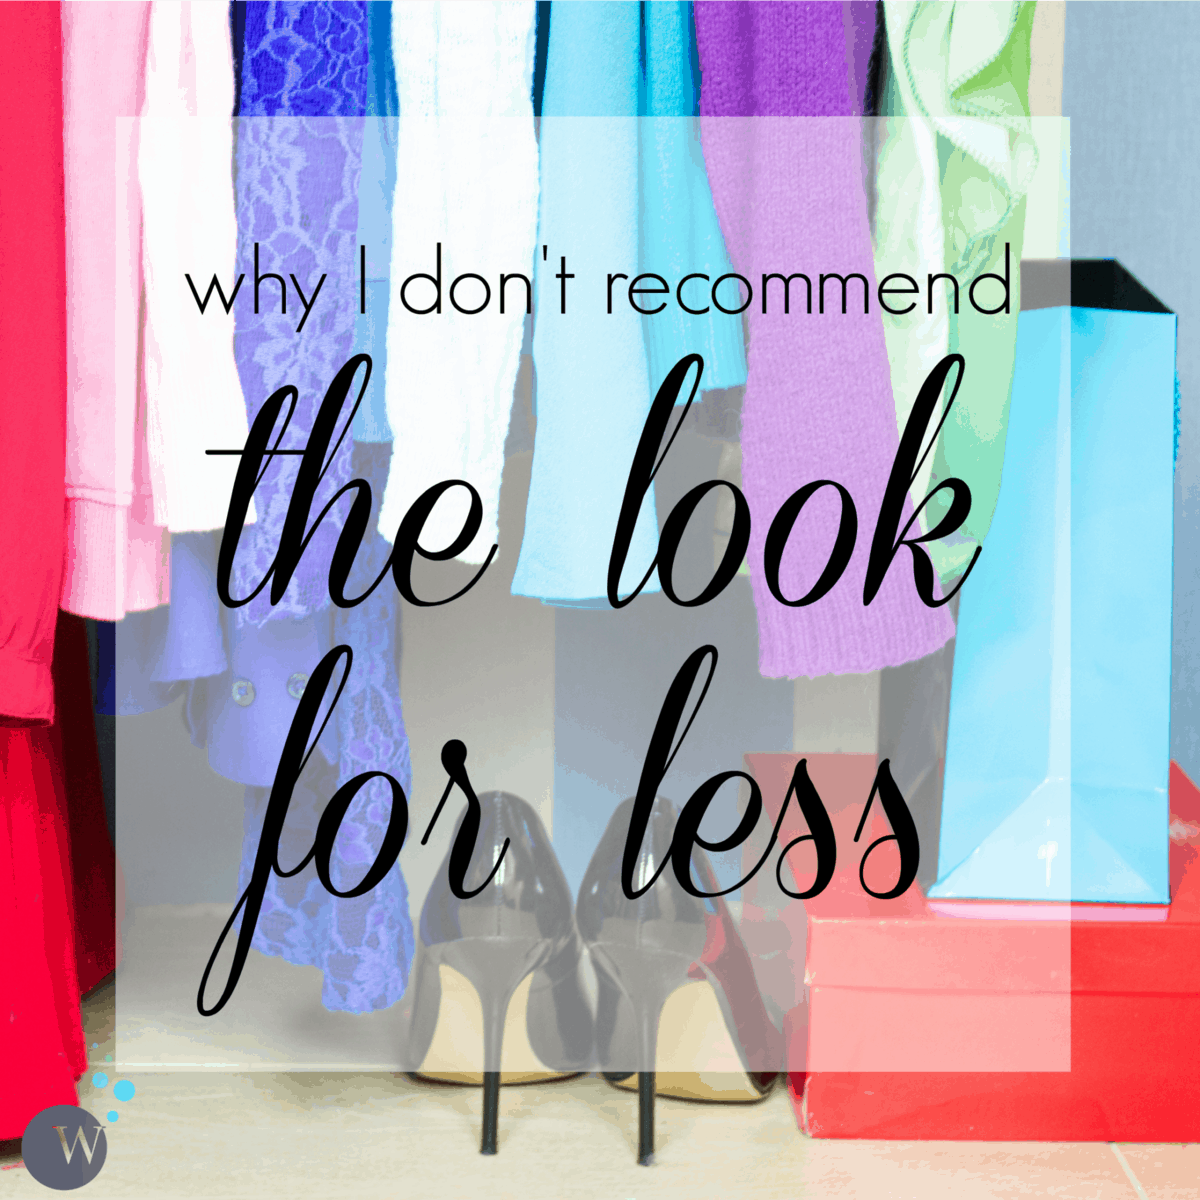 Wardrobe Oxygen - Why I don't Recommend the Look for Less and how to achieve personal style on a budget